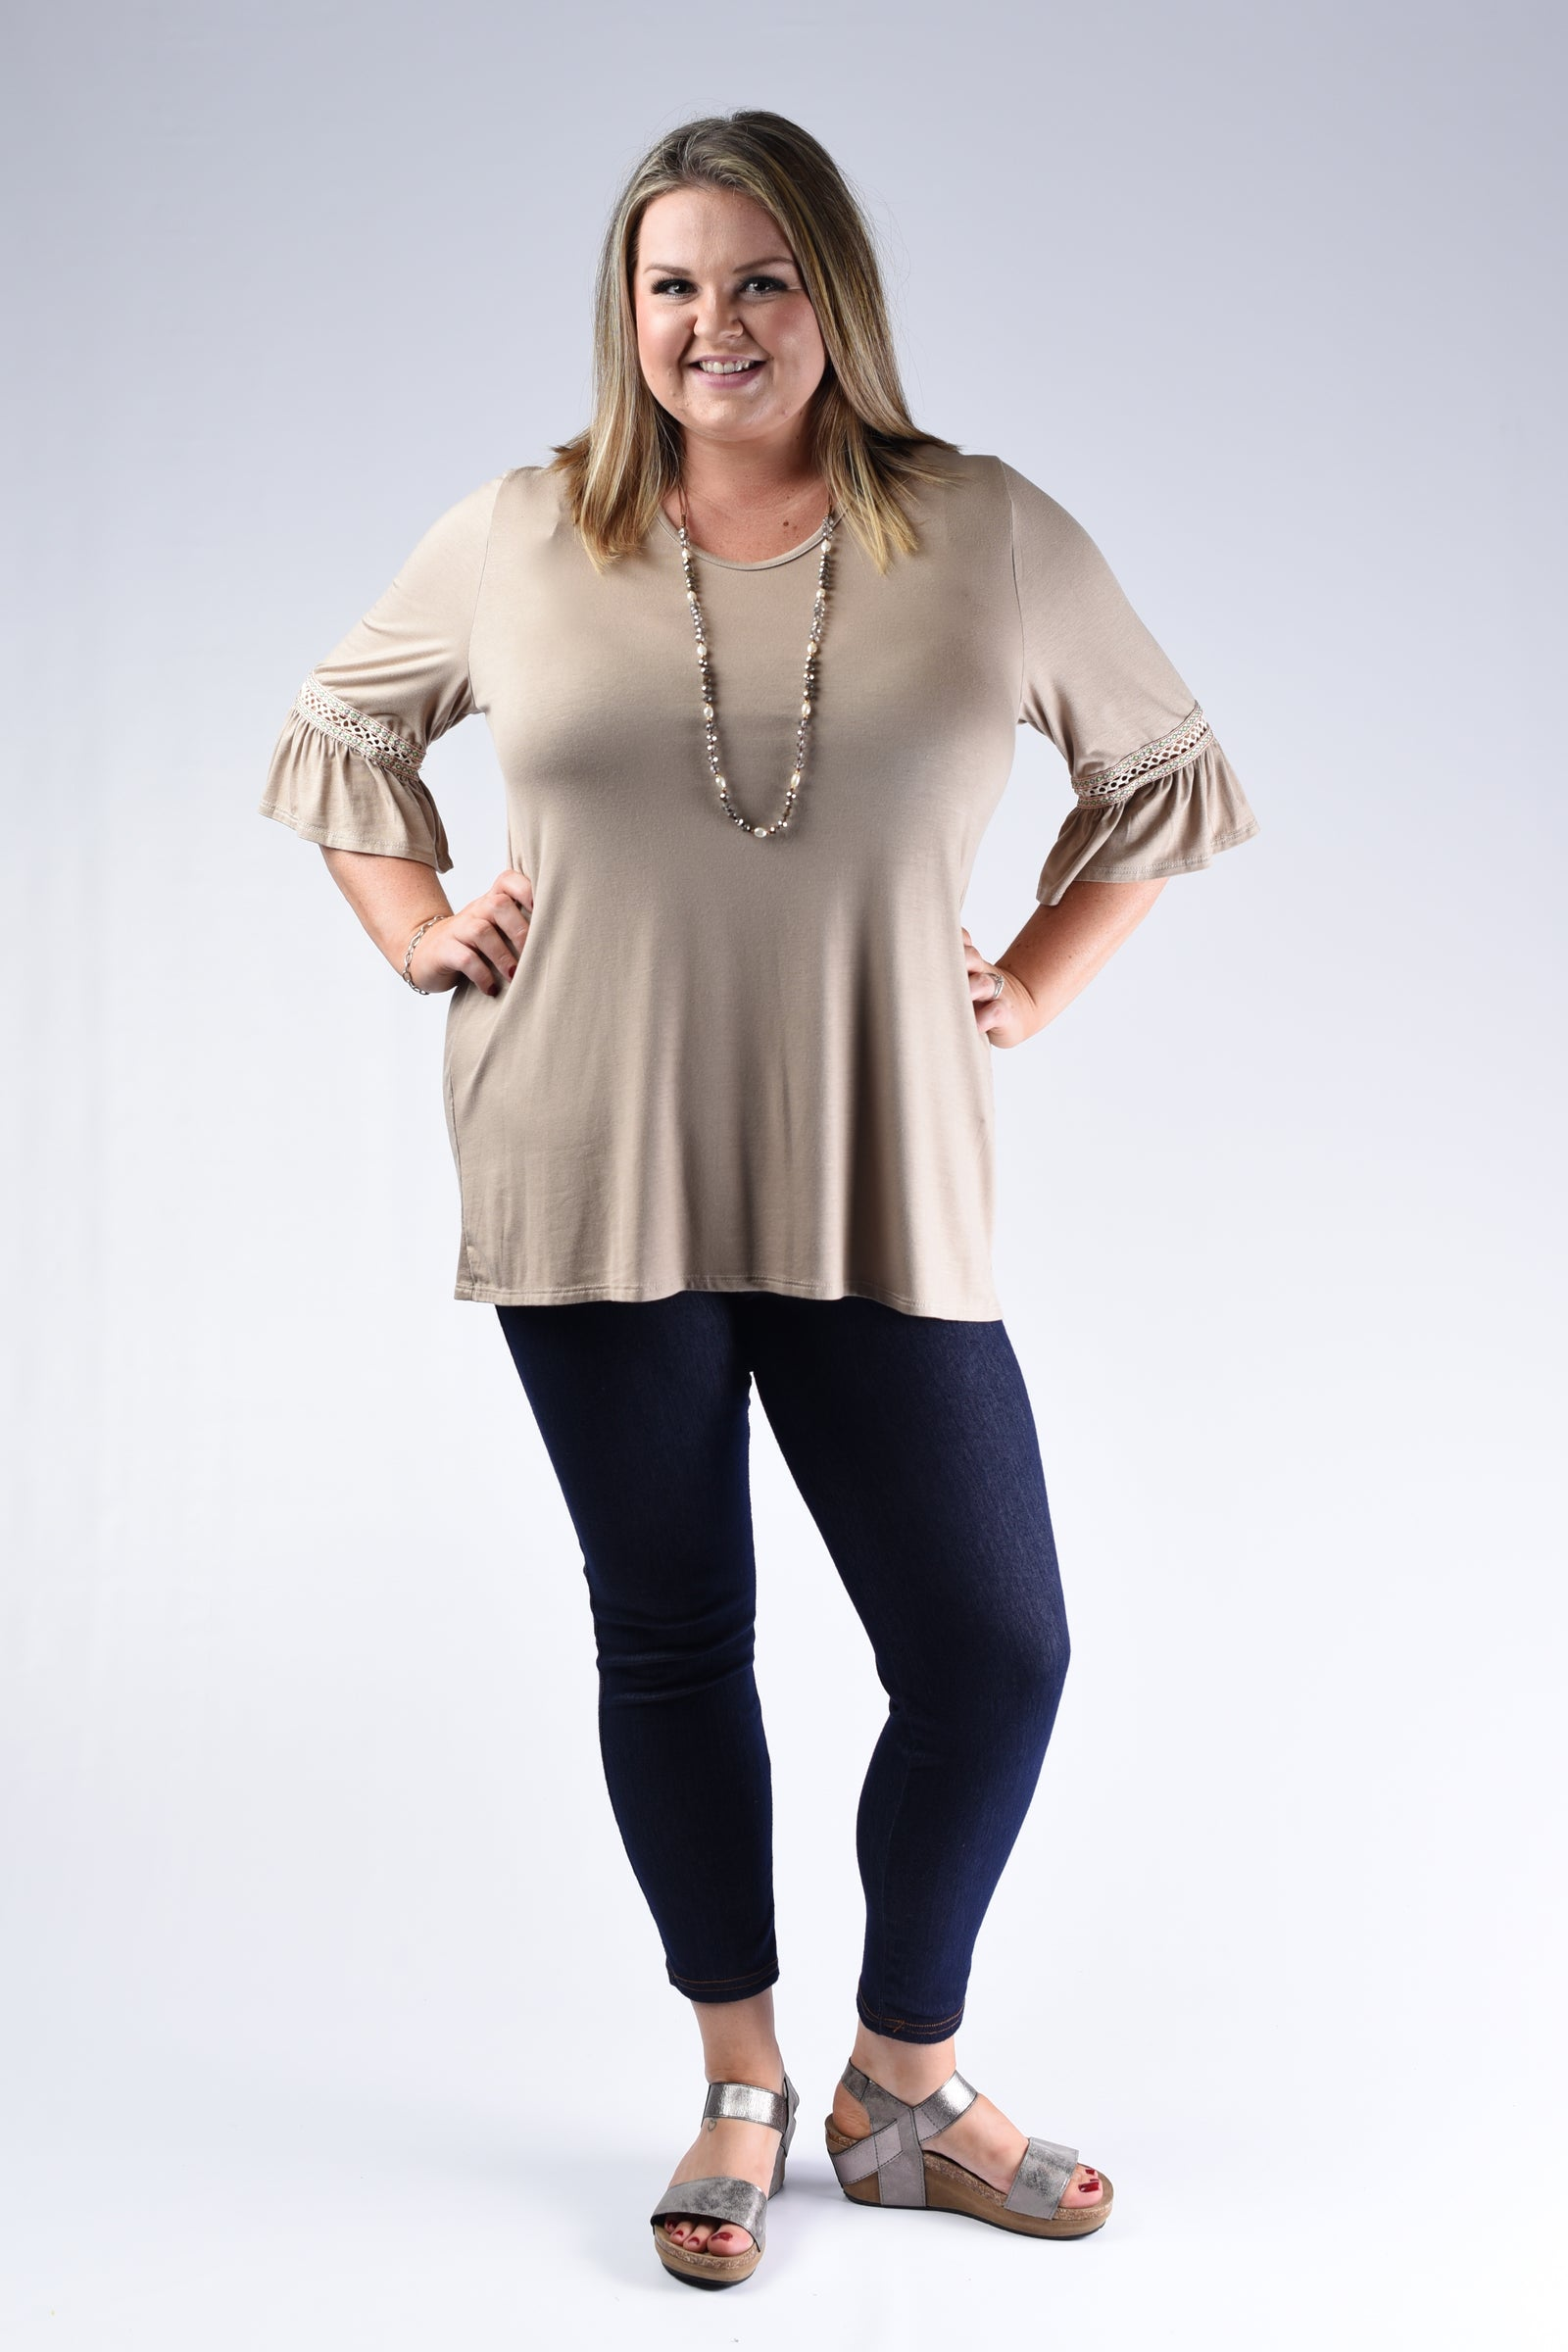 Mocha Swoop Crochet Detail Top - www.mycurvystore.com - Curvy Boutique - Plus Size